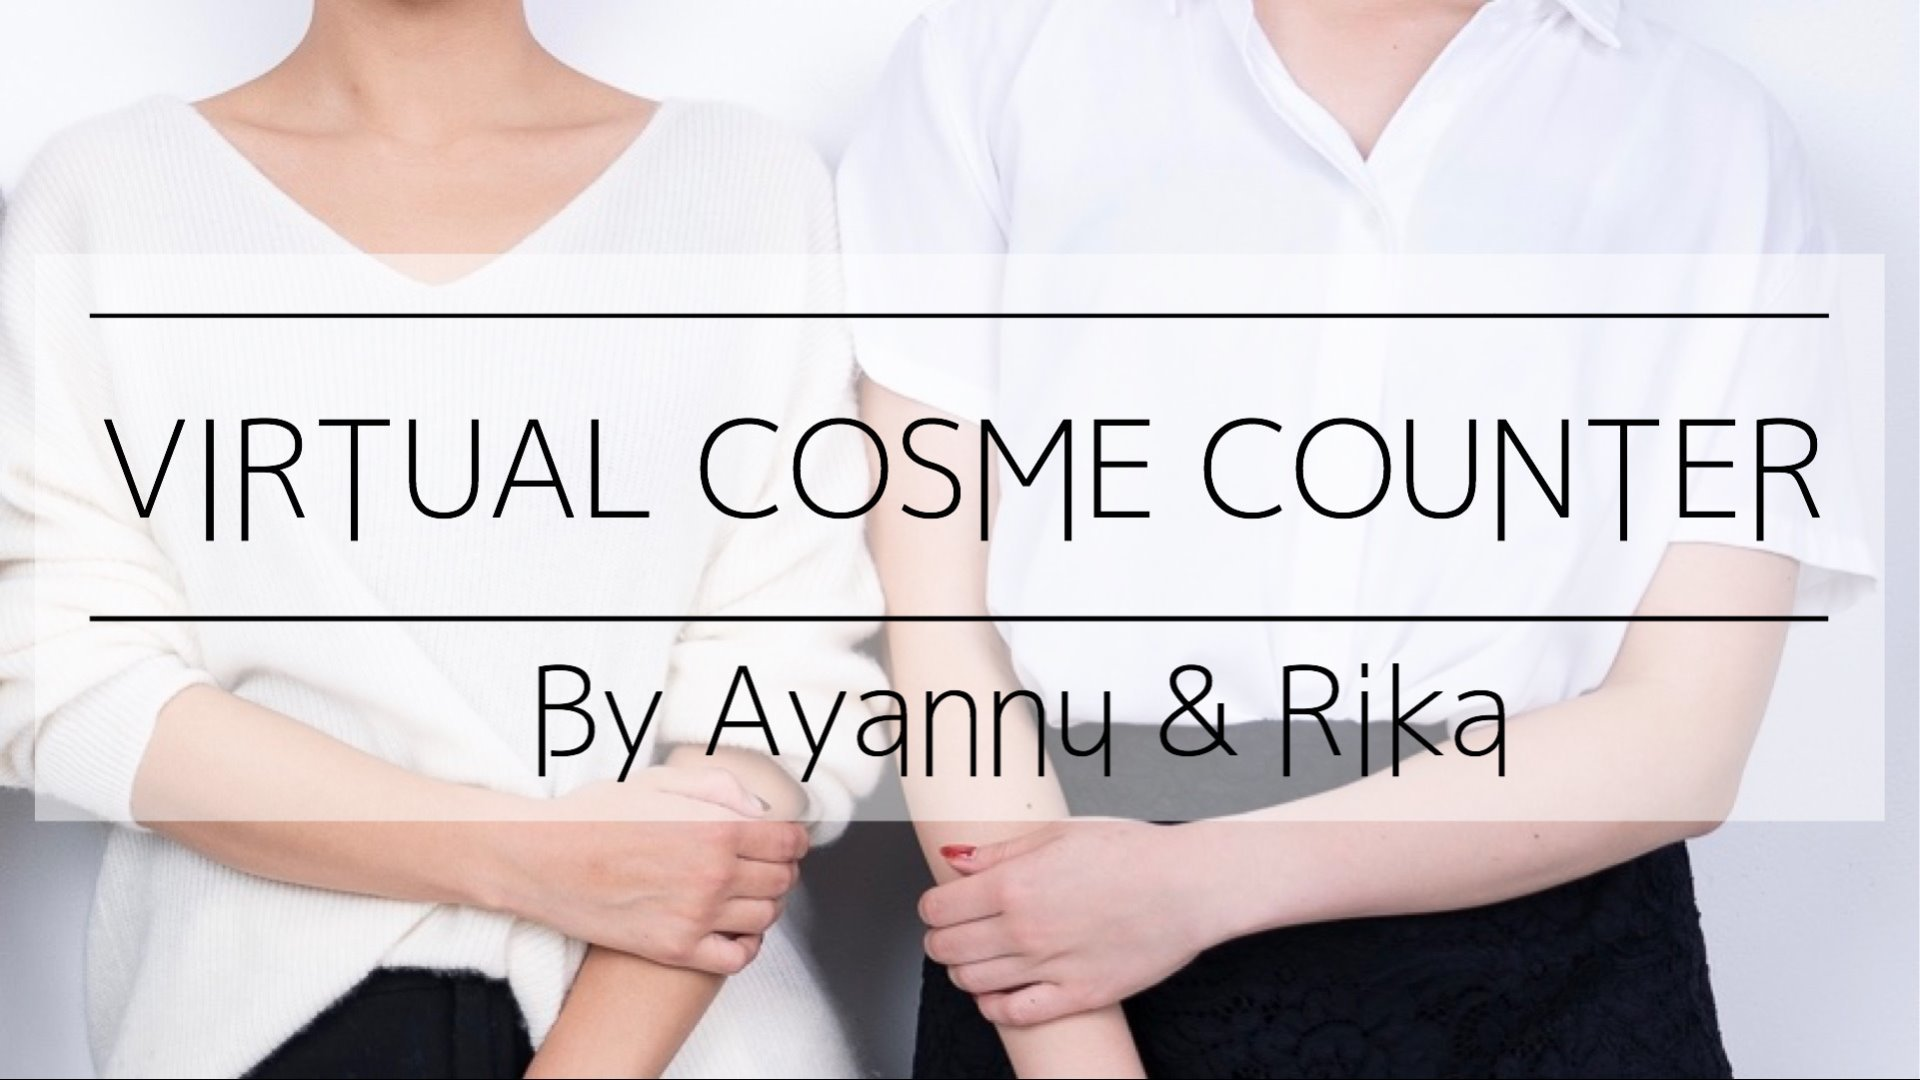 〈VIRTUAL COSME COUNTER 〉